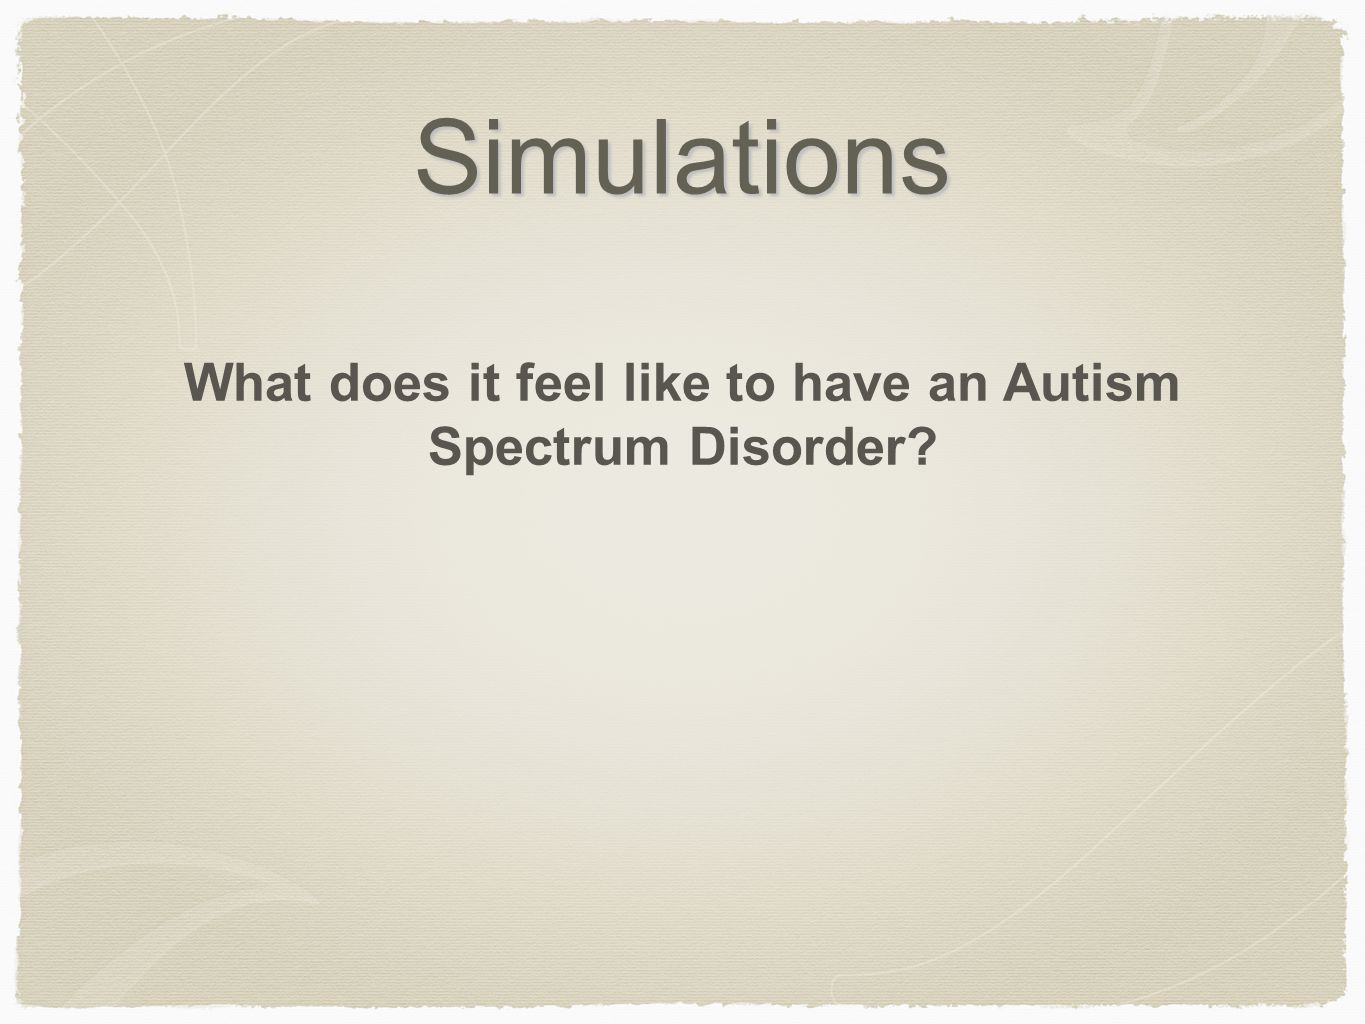 Simulations What does it feel like to have an Autism Spectrum Disorder?